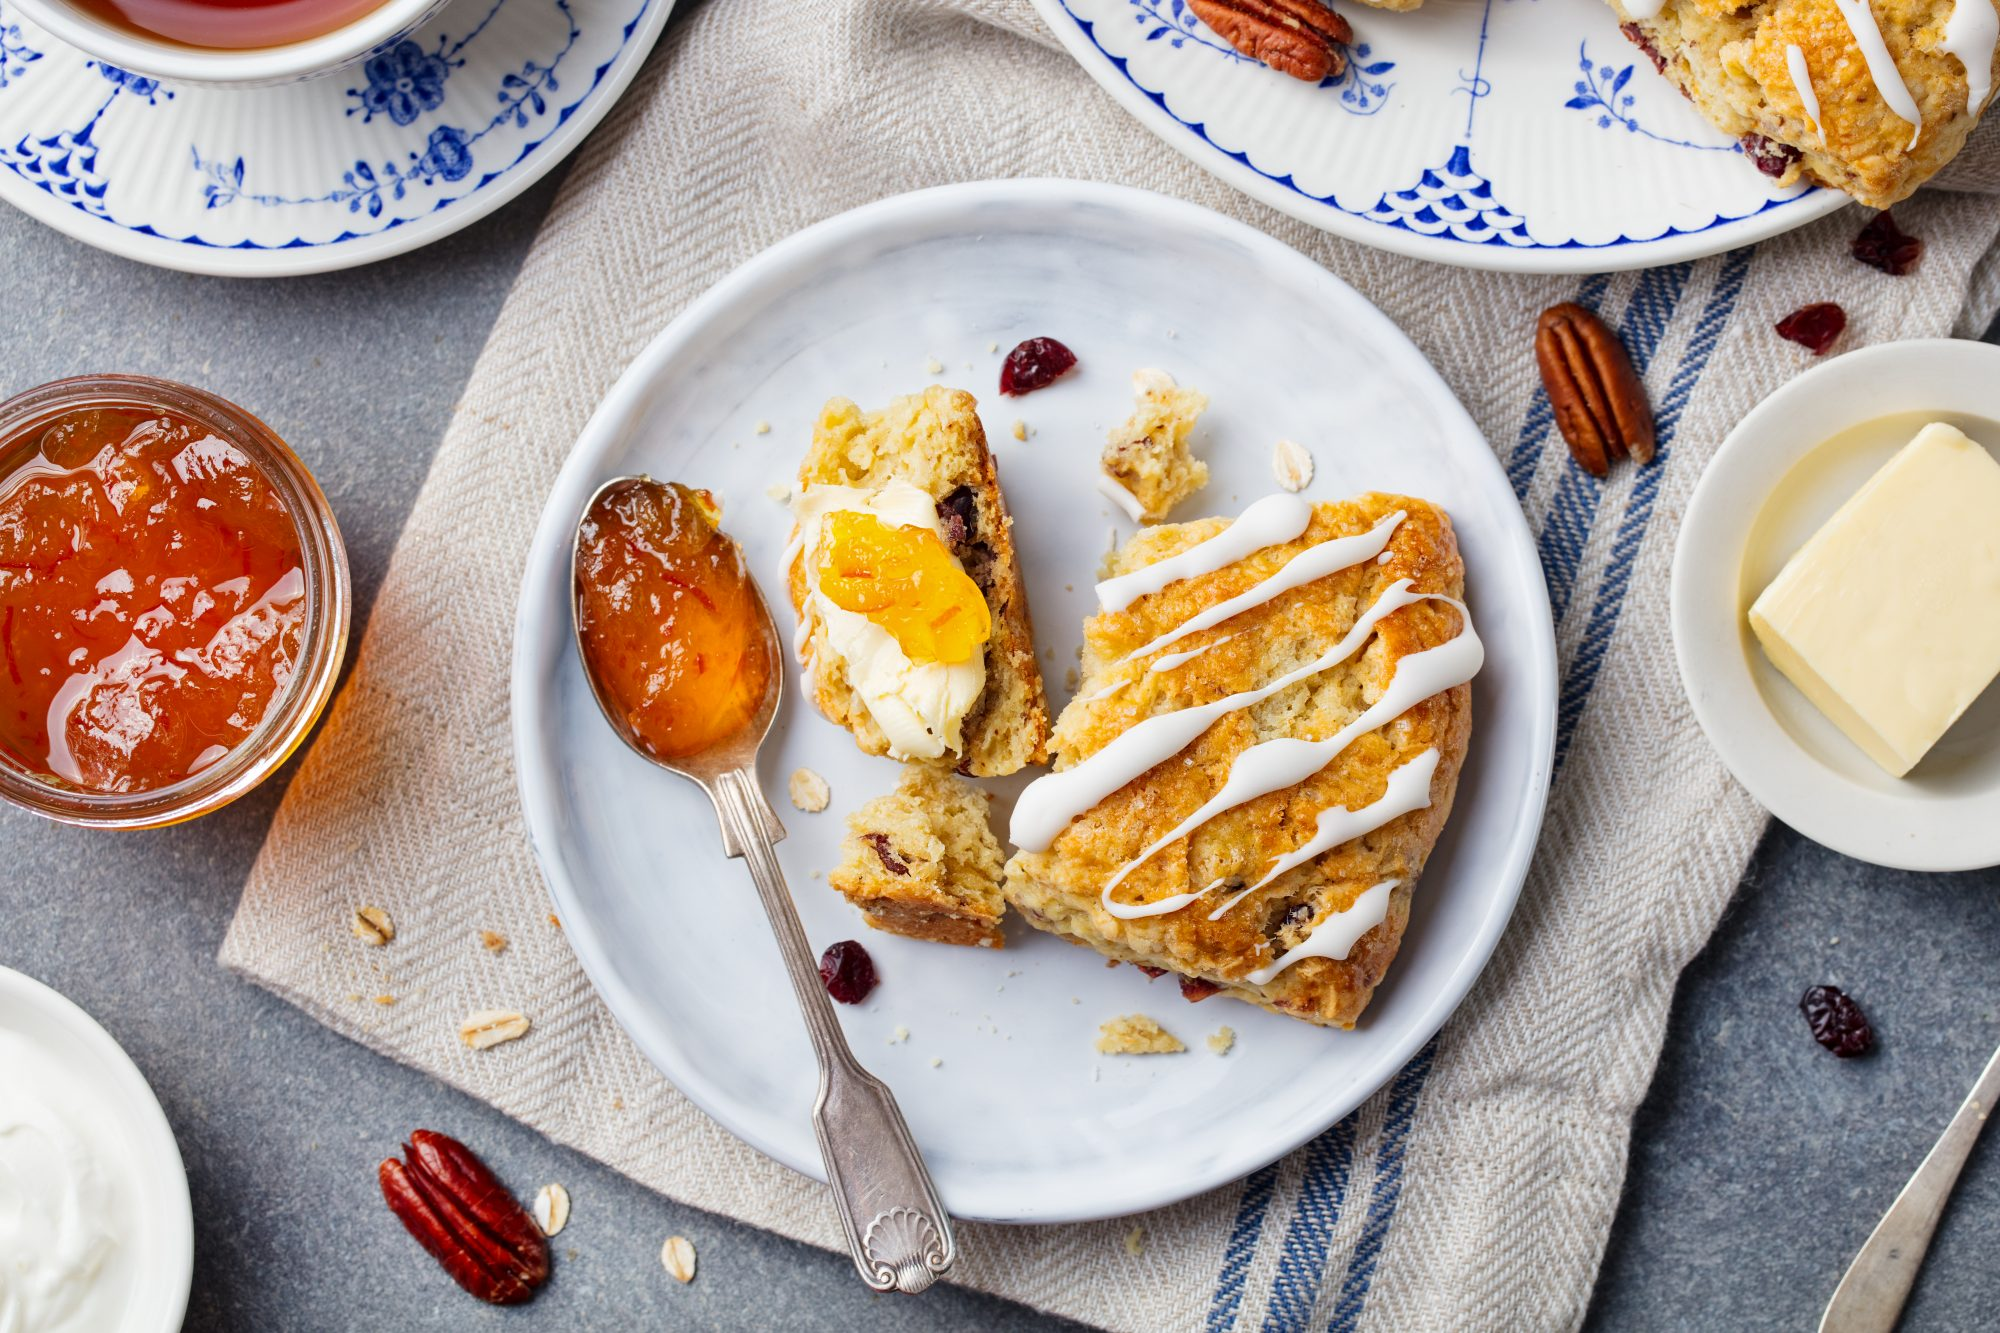 scone with marmalade and butter